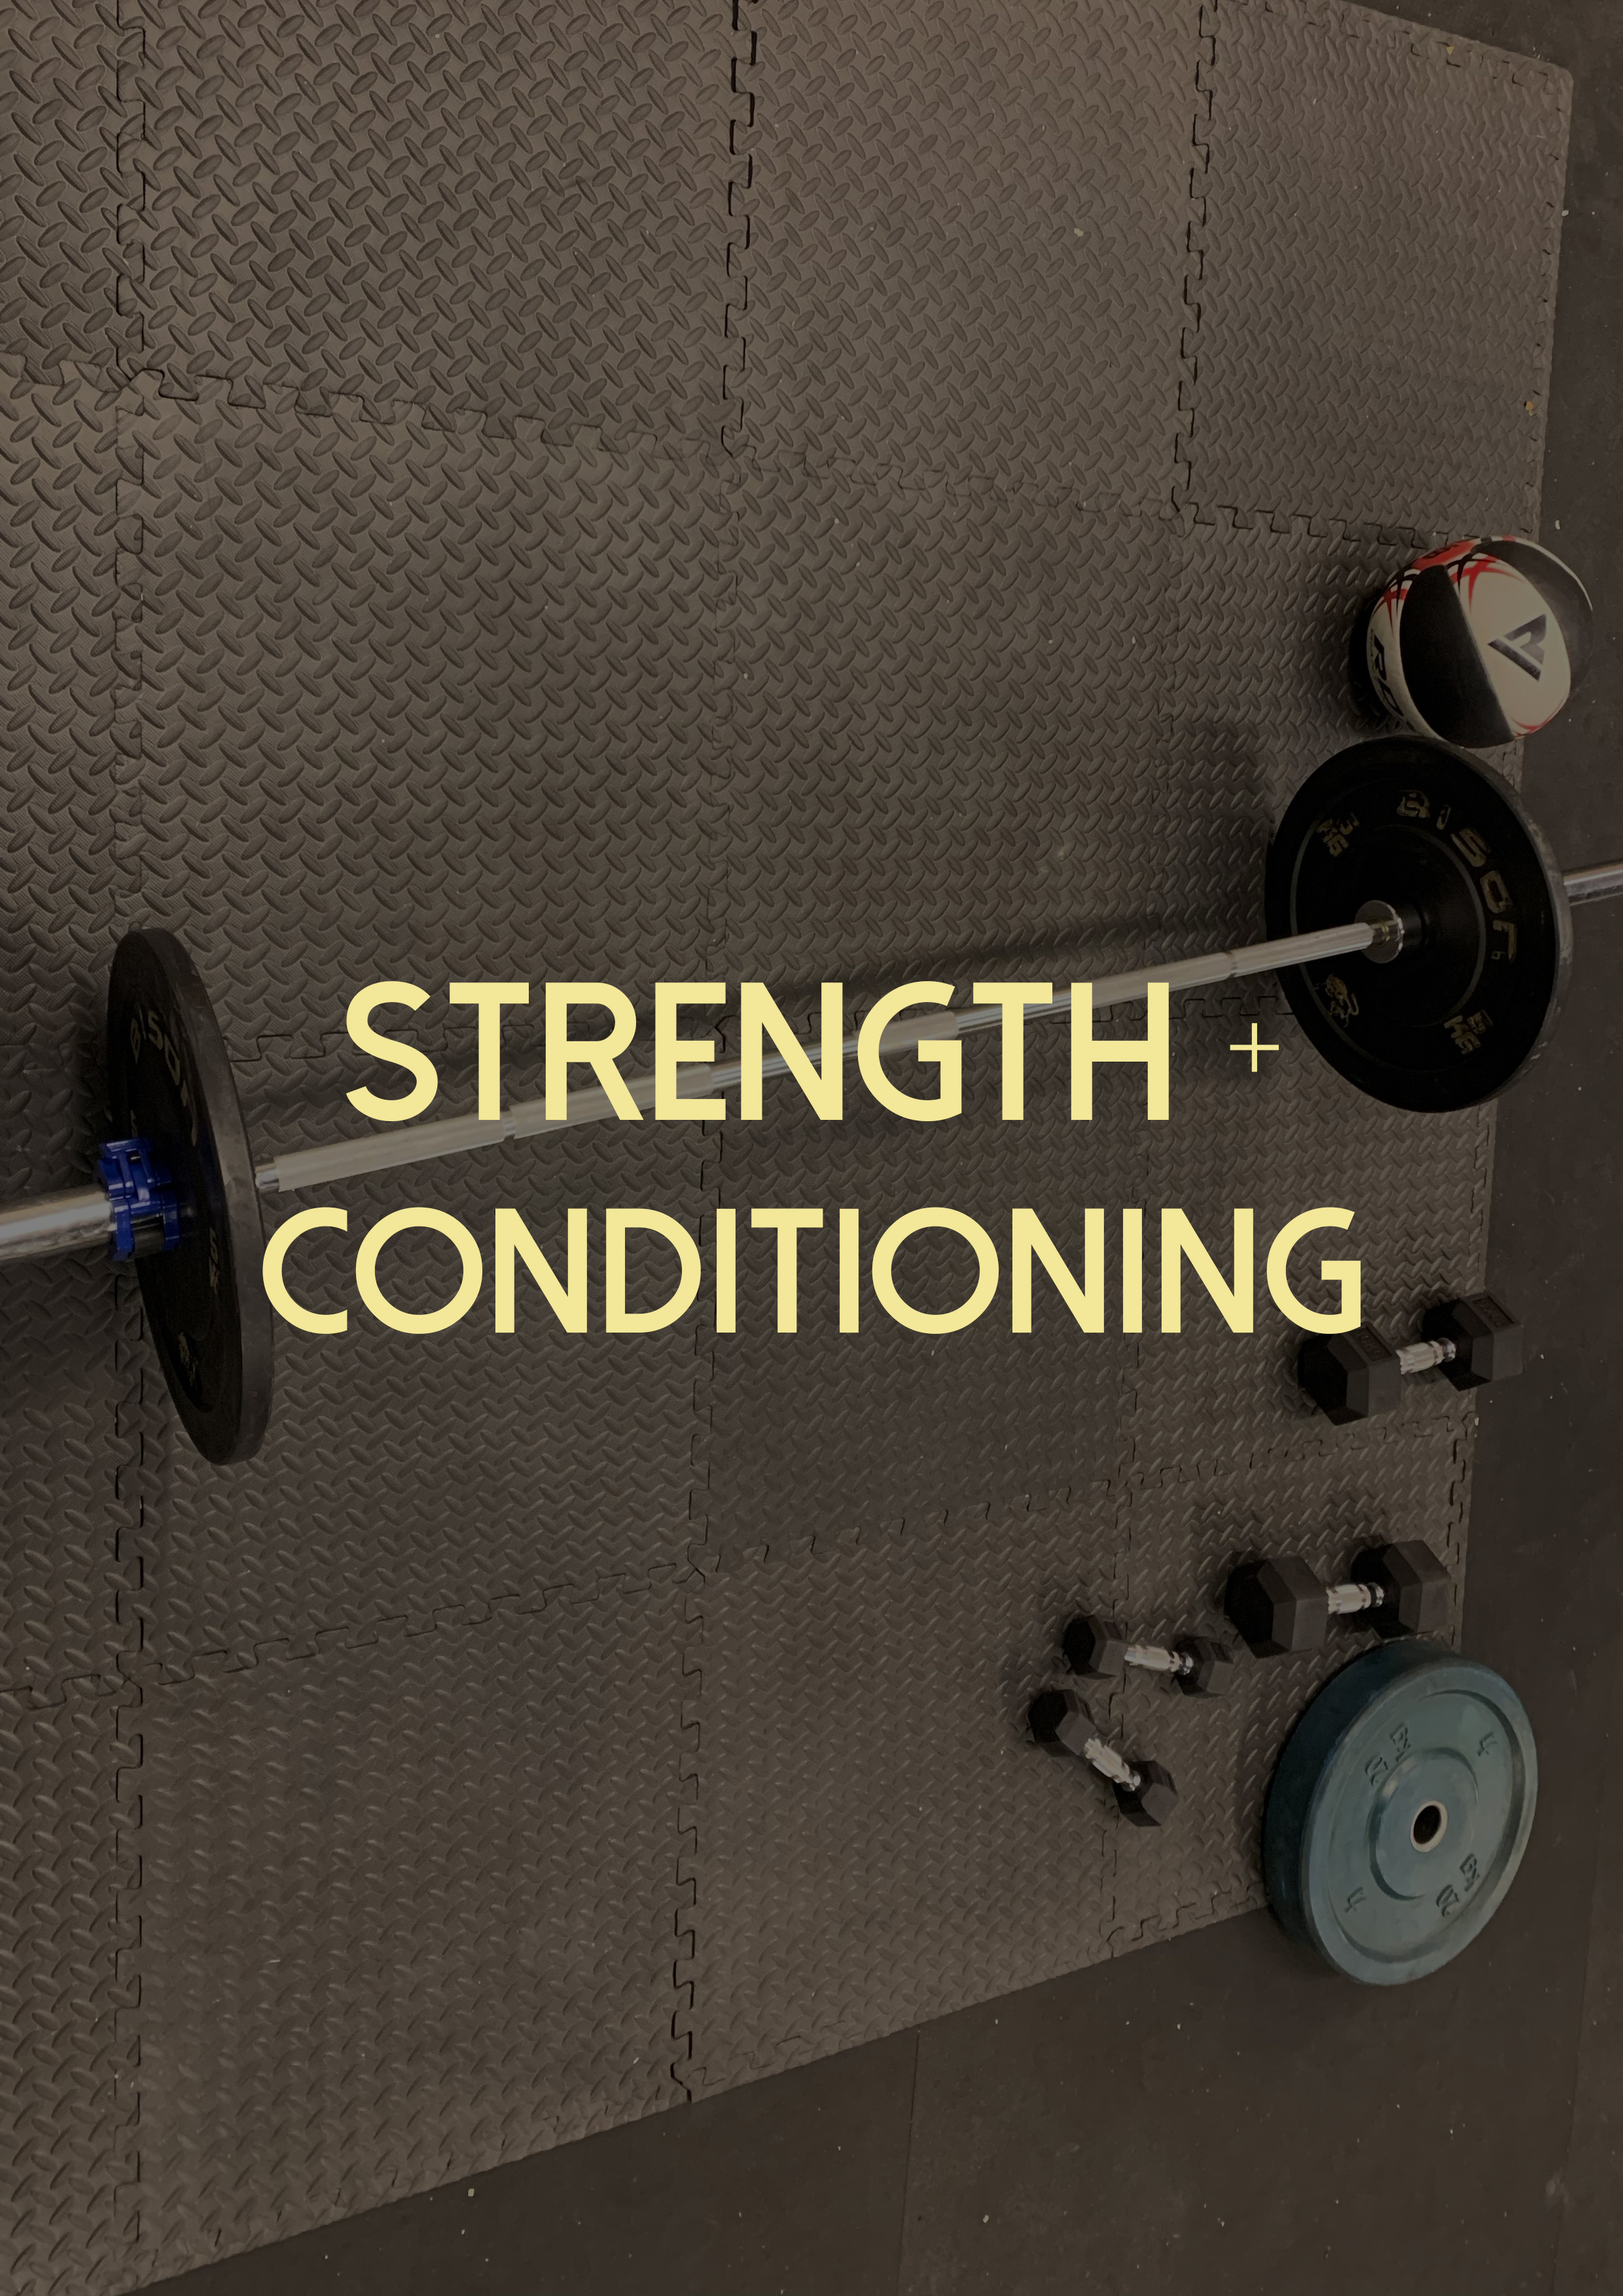 Strength + Conditioning